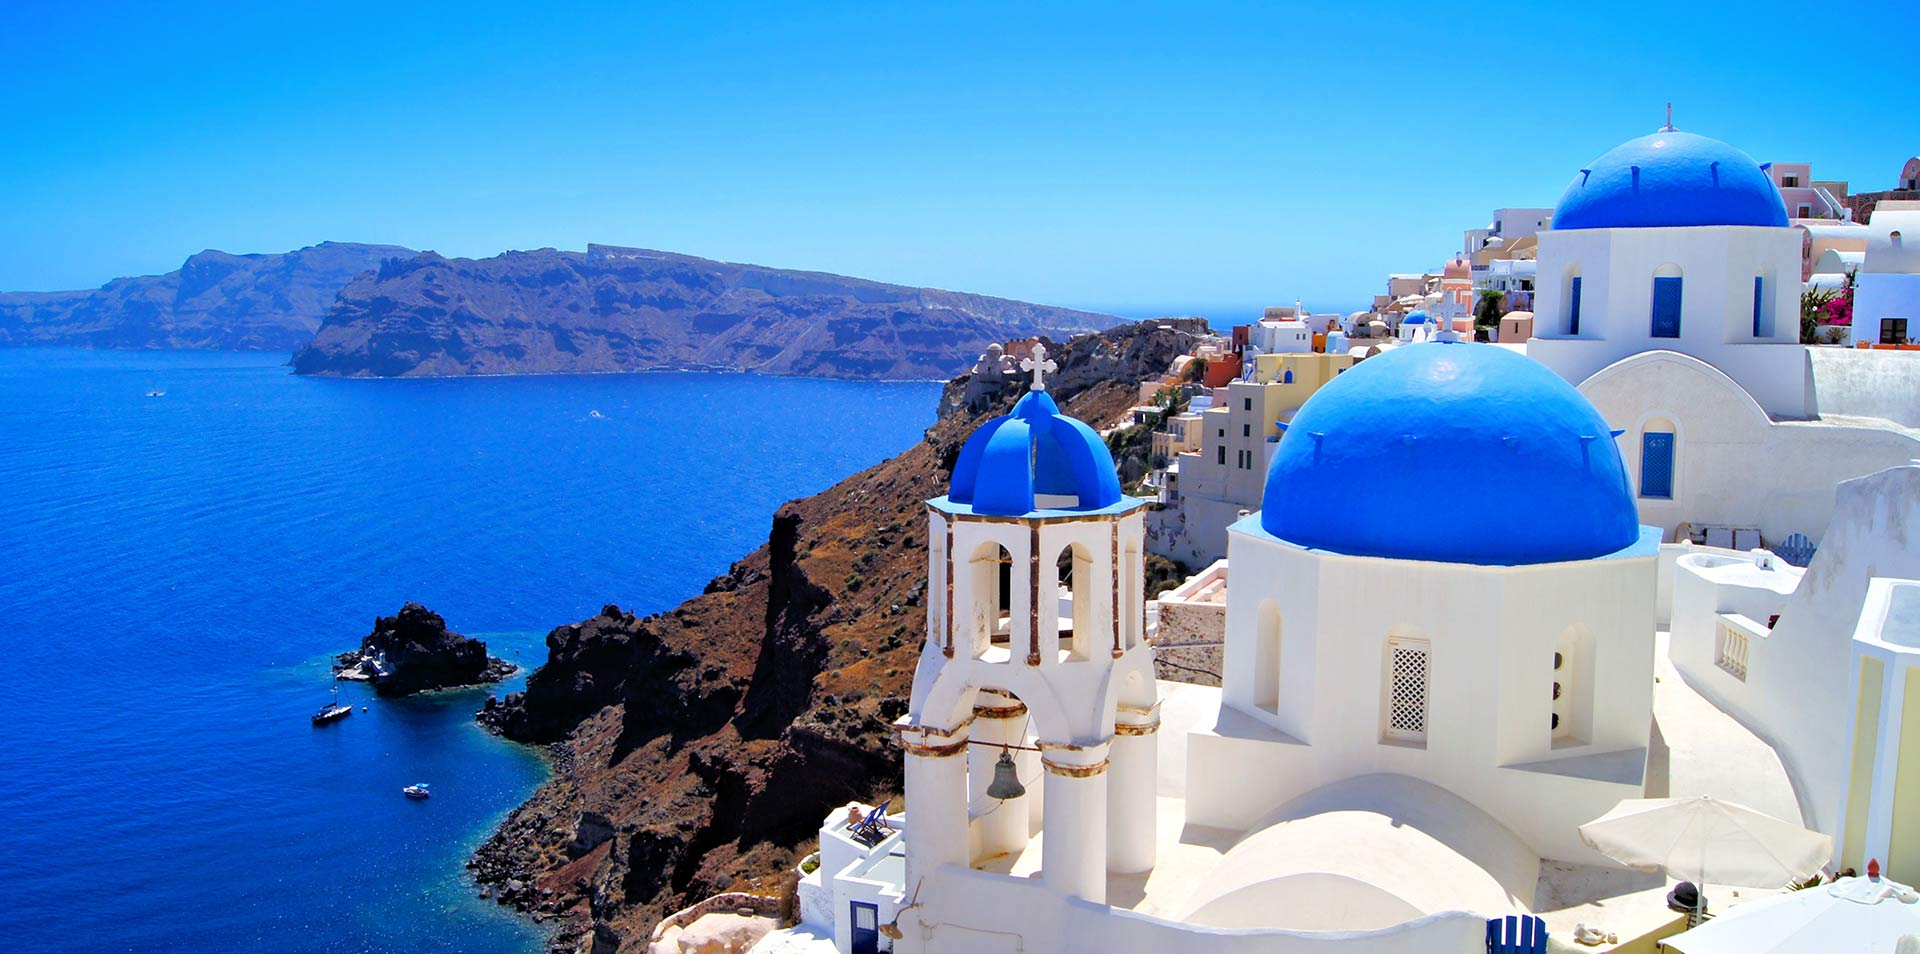 Europe Greece Santorini blue and white buildings on cliffside overlooking ocean - luxury vacation destinations